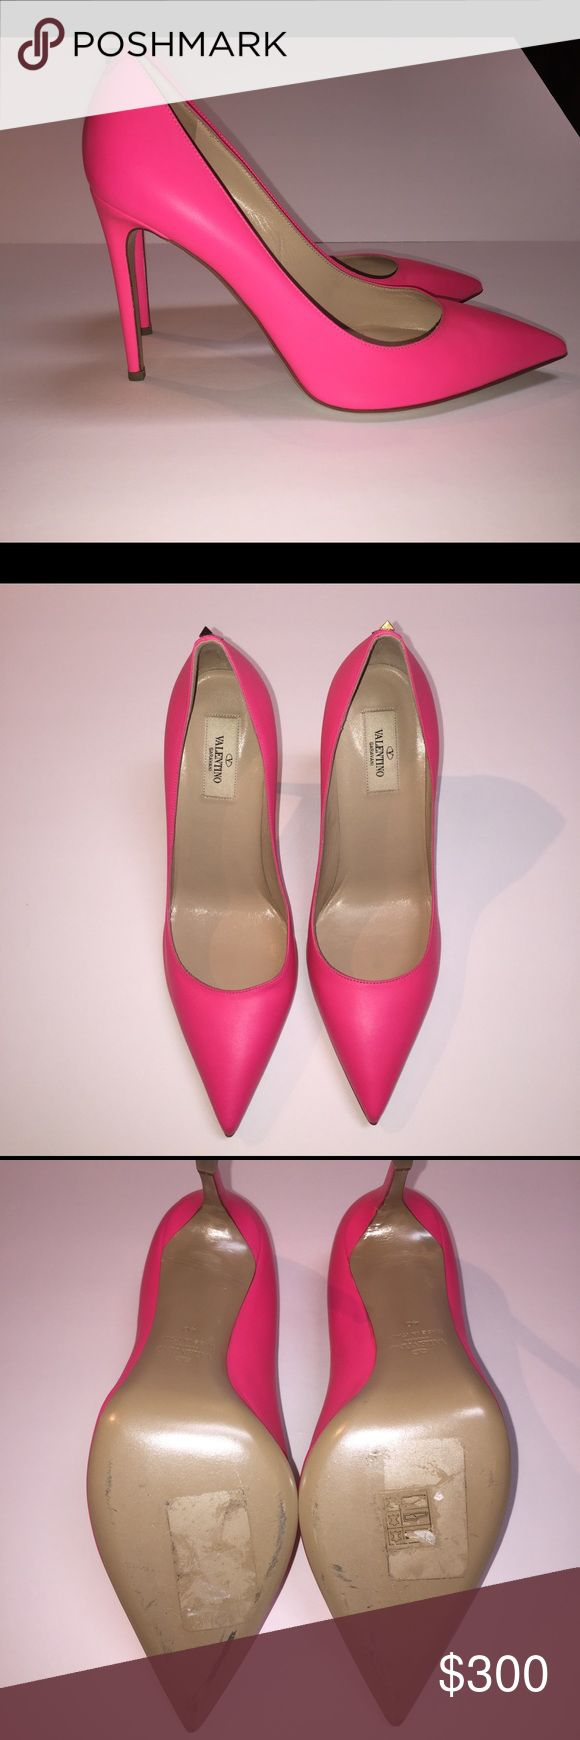 Valentino Pink Pumps Beautiful Valentino Hot Pink Pumps for sale!  Only worn once indoors, for less than 1 hour.  You can see minor scuffs on the soles, but they are in nearly new condition.  Beautiful pink for that perfect pop of color to your wardrobe! Valentino Shoes Heels